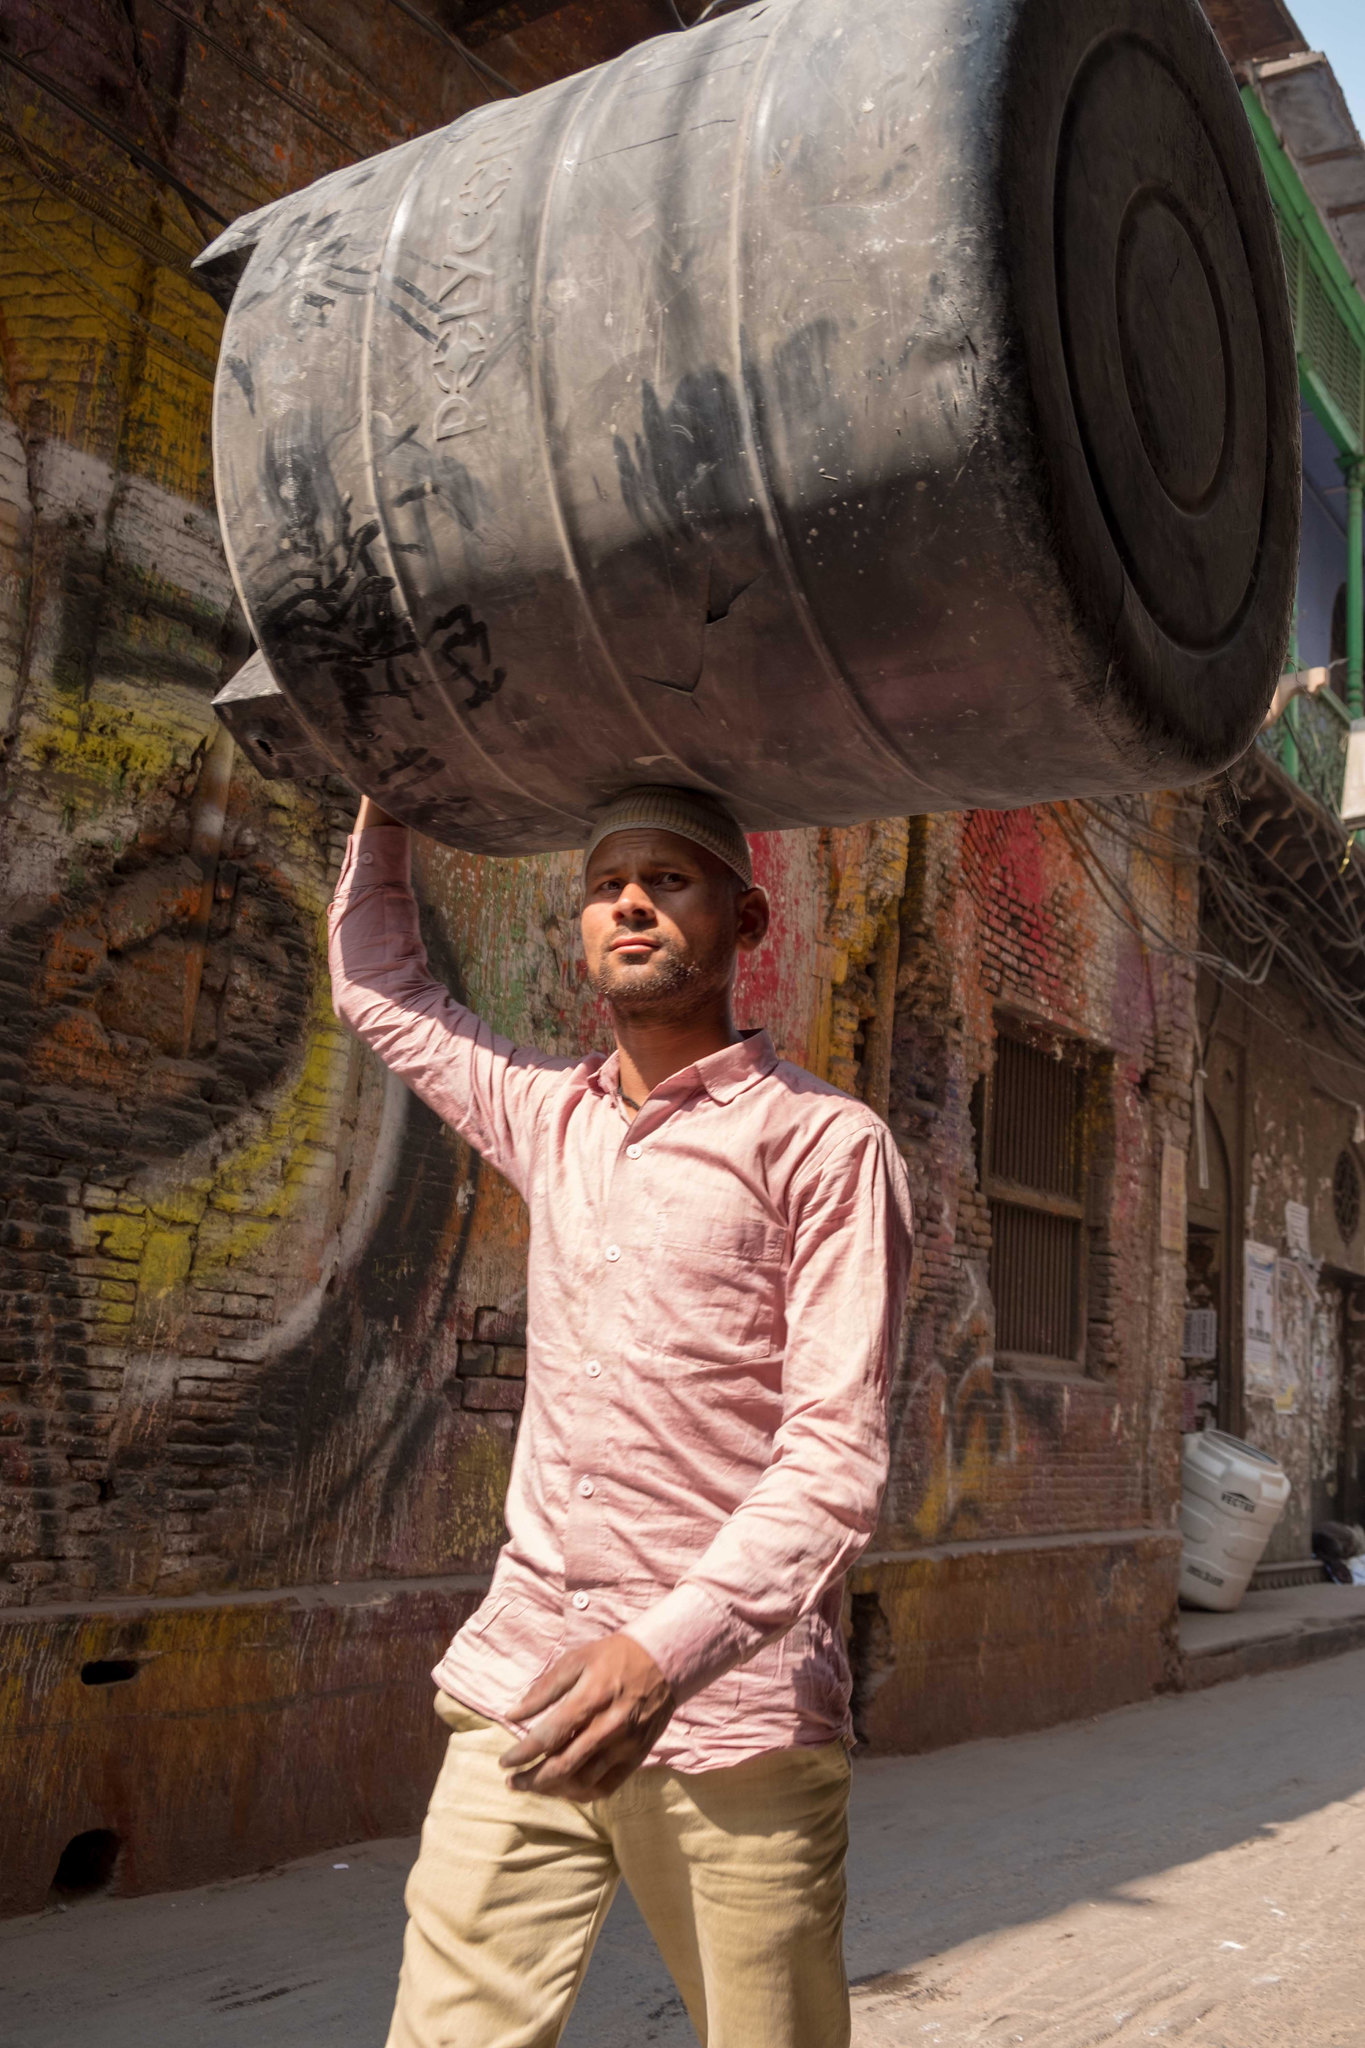 A labourer carrying a old water tank